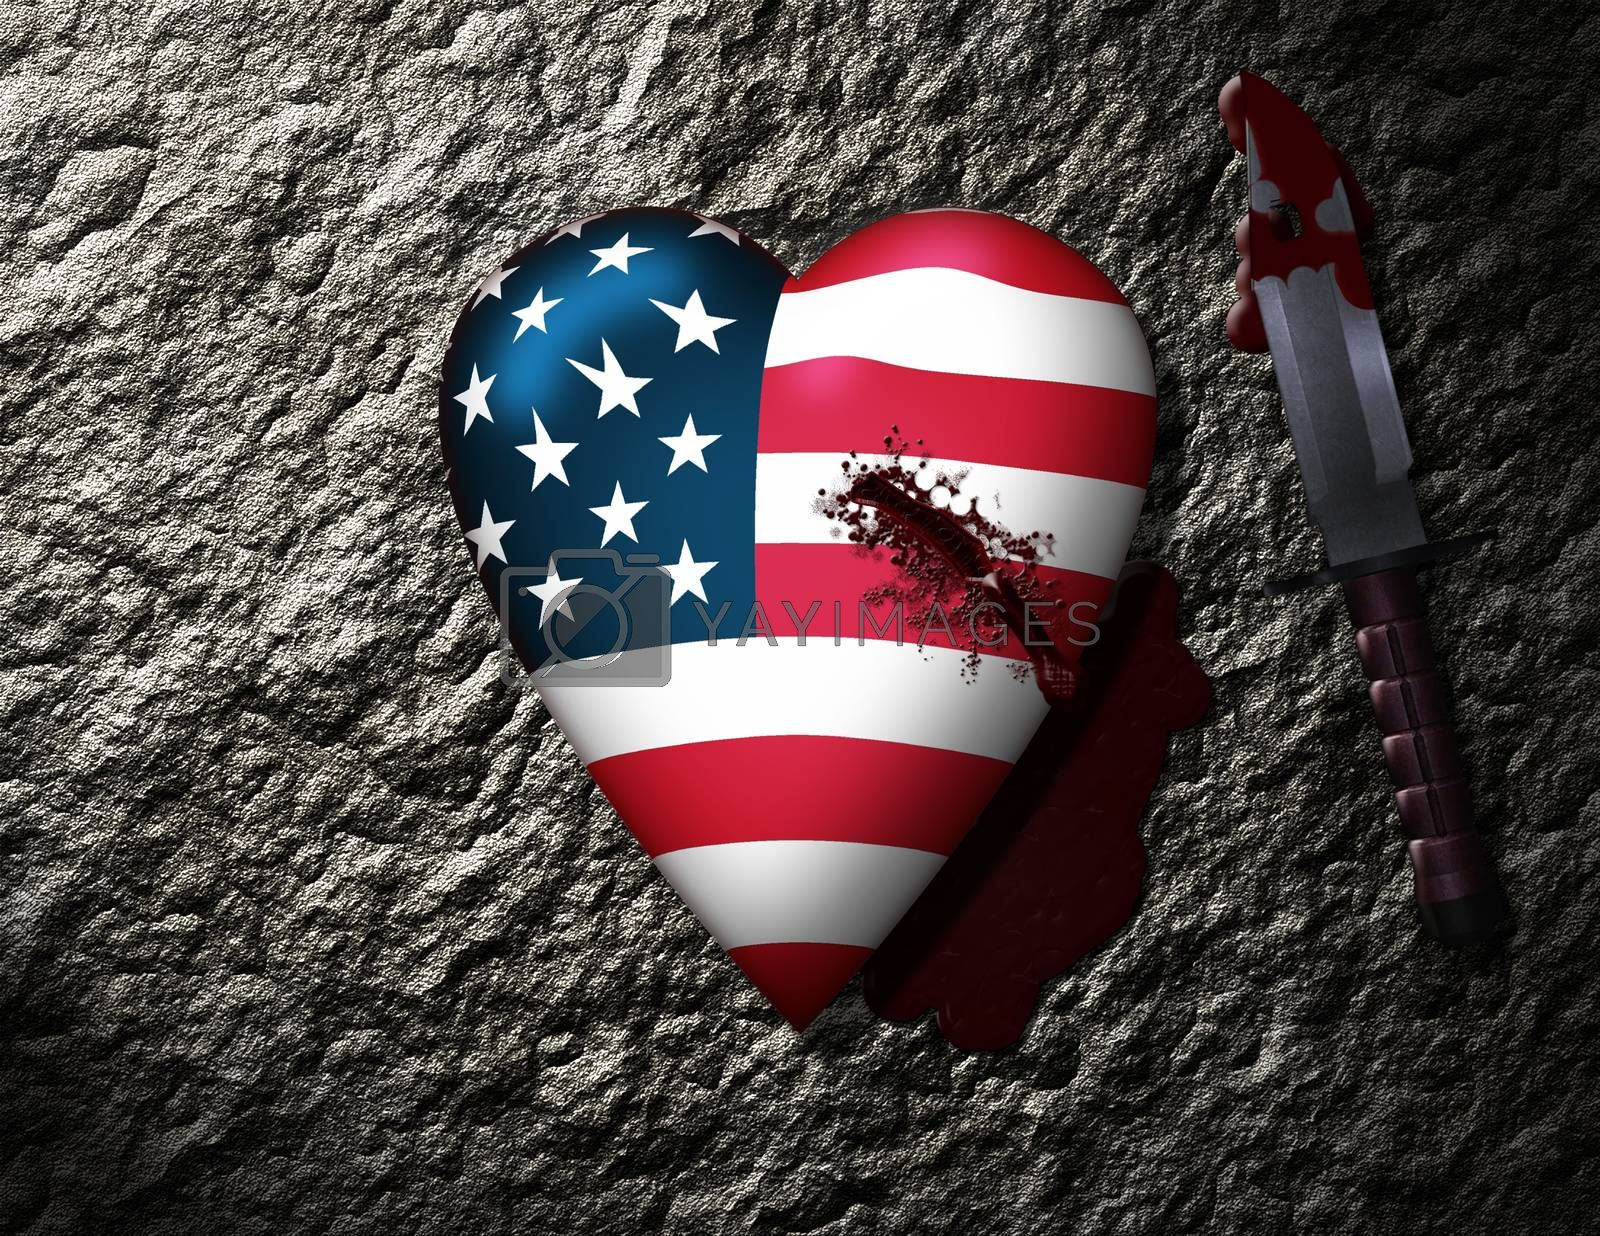 USA Heart Stabbed by Knife